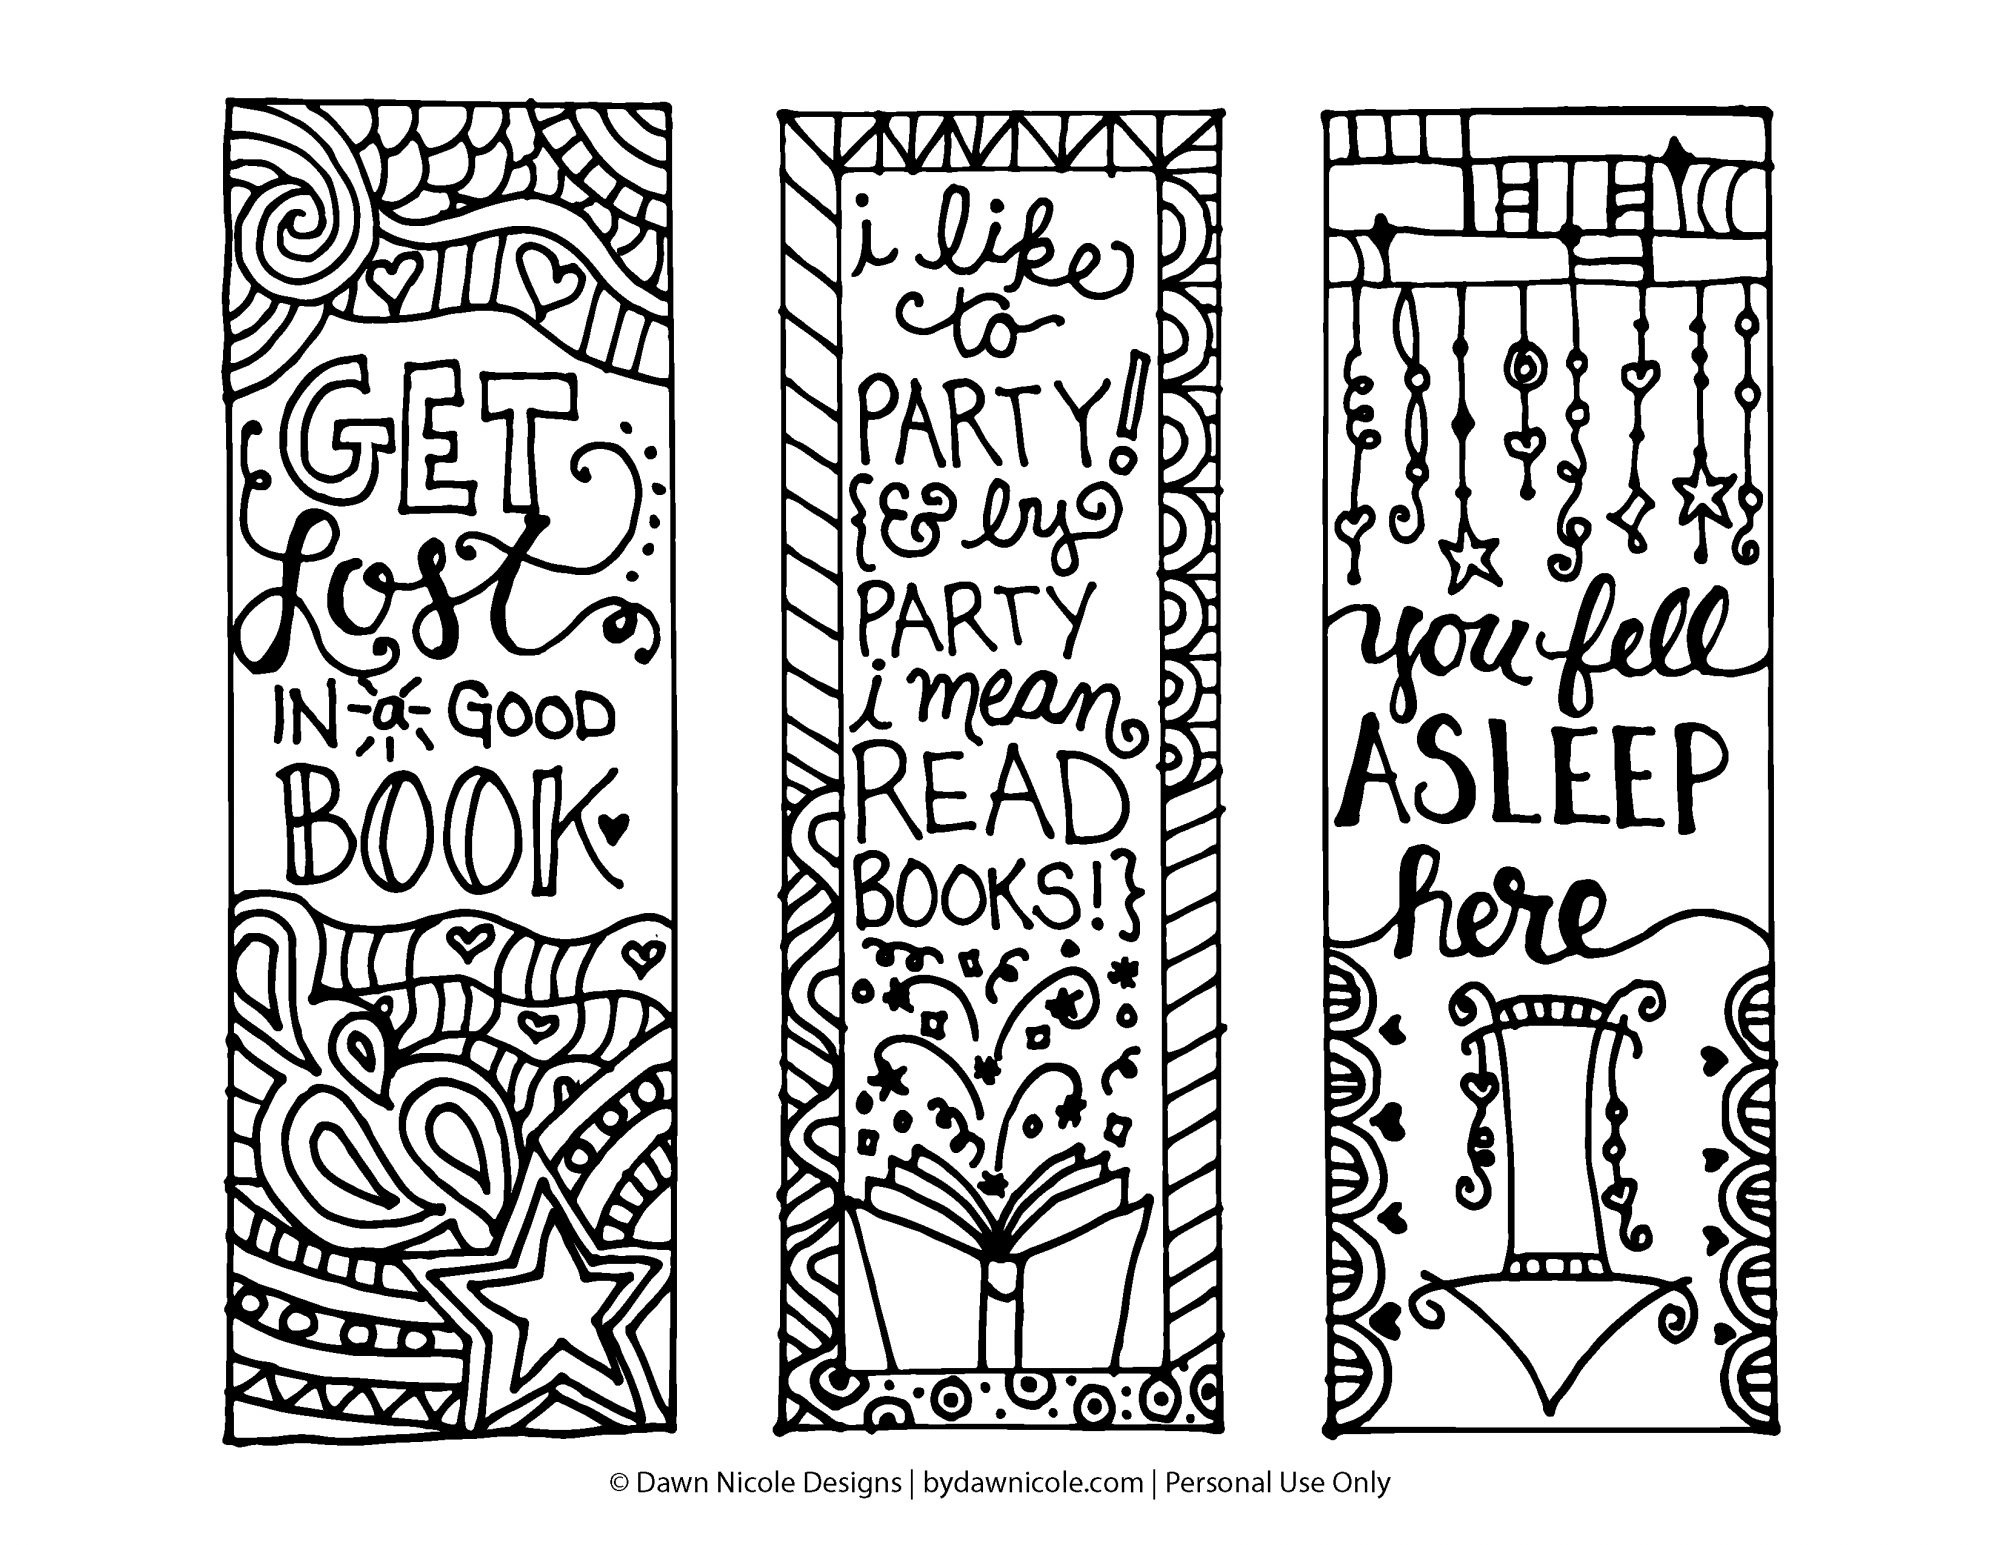 023 Printable Animal Bookmarks Classicoldsong Me To Make And Print - Free Printable Bookmarks Templates